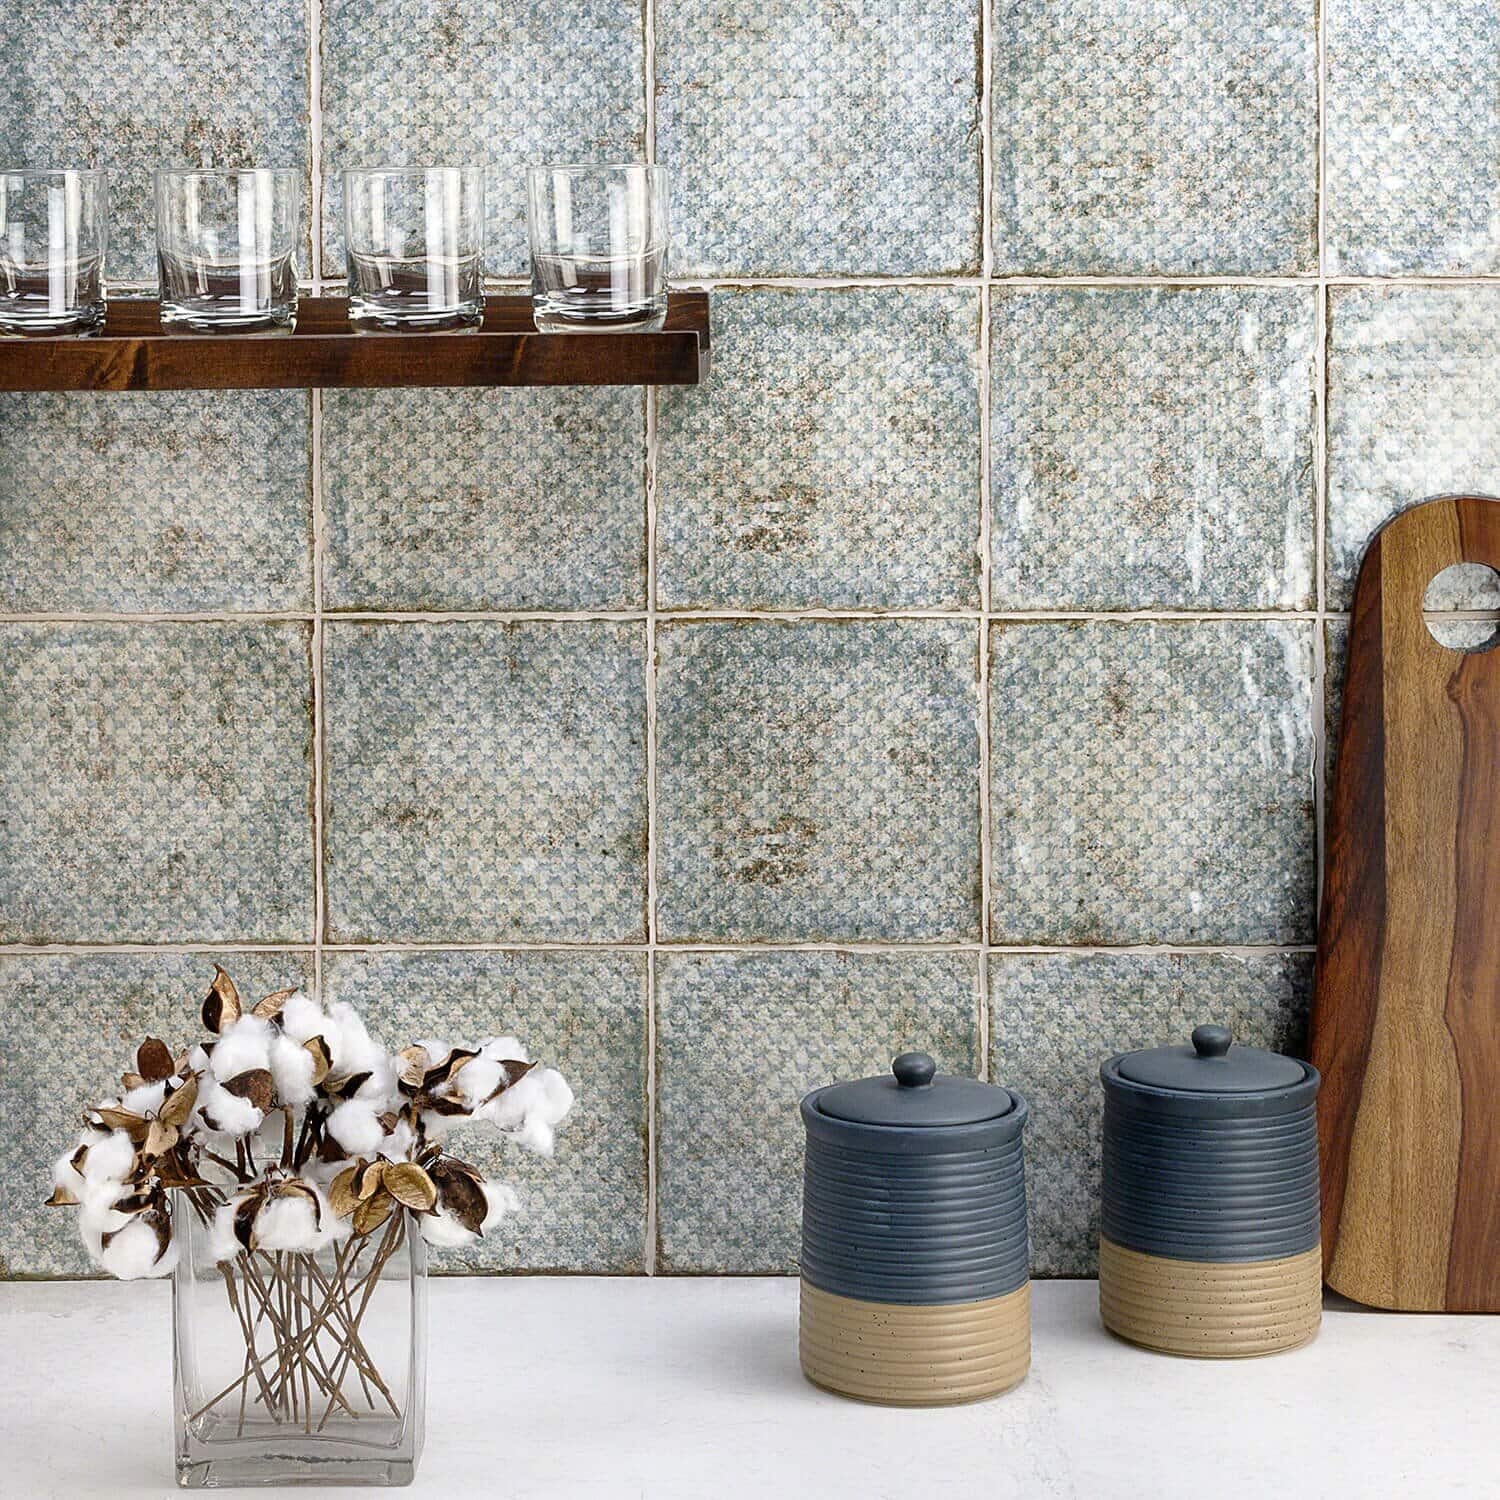 Add a little Color with these Blue Textured Tiles